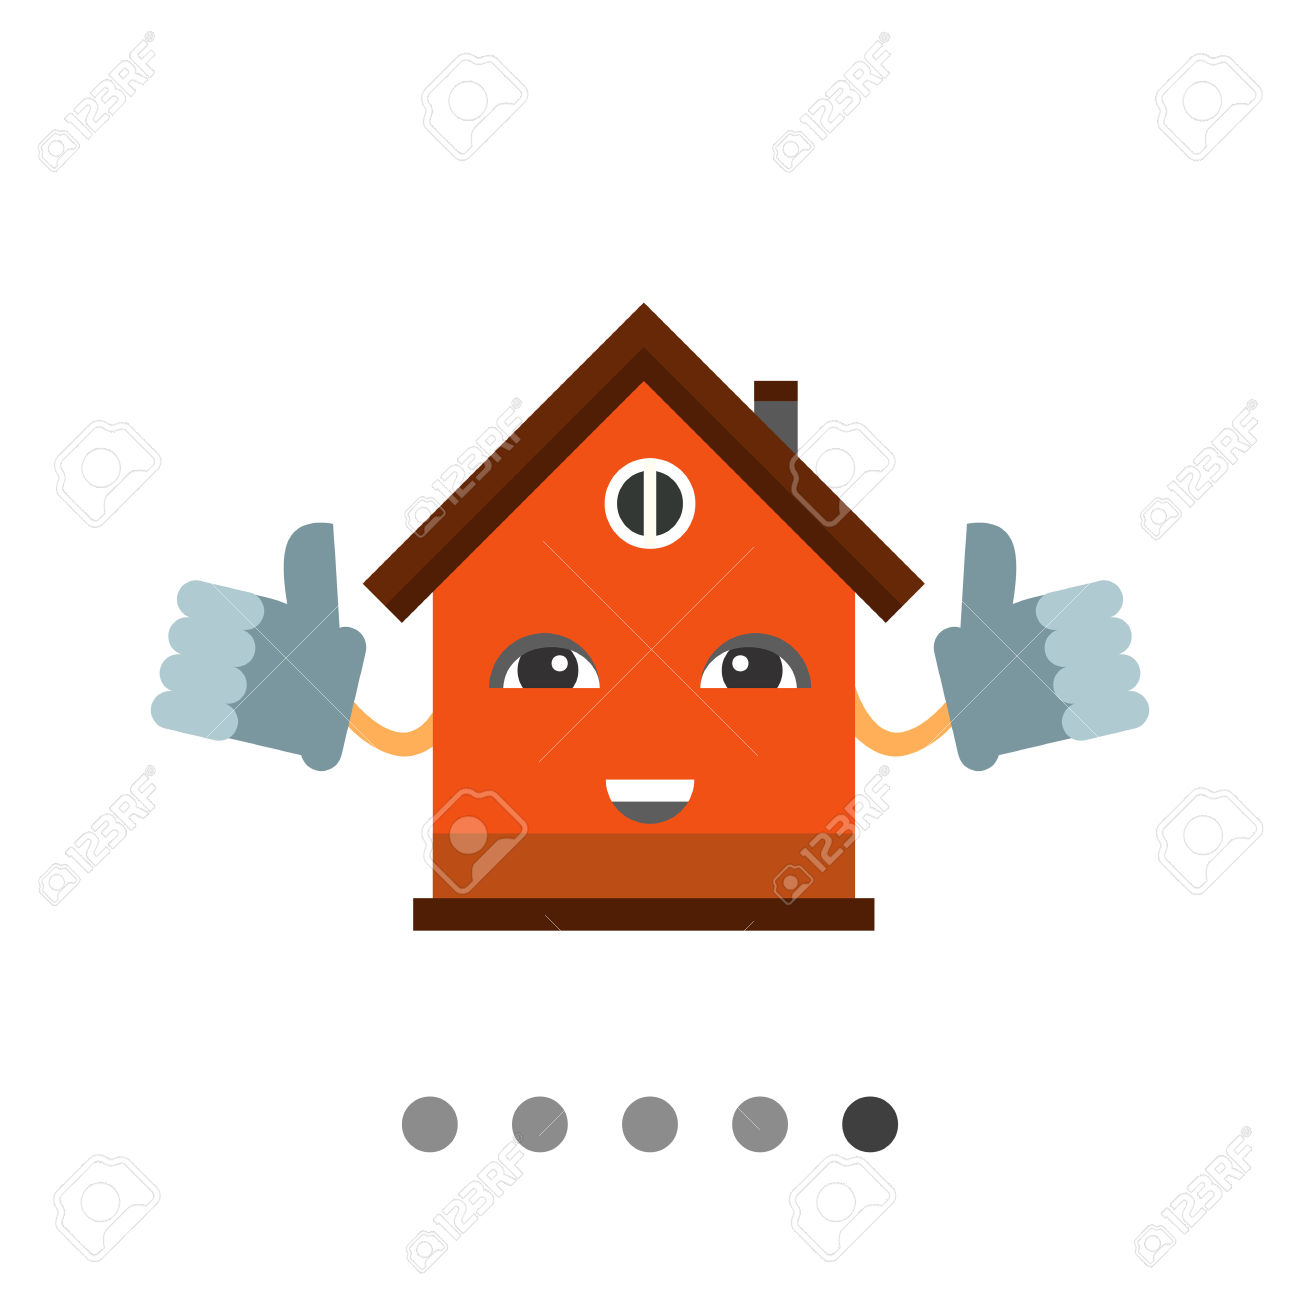 Smiling Cartoon House Holding Thumbs Up. Mascot, Home, Shelter.